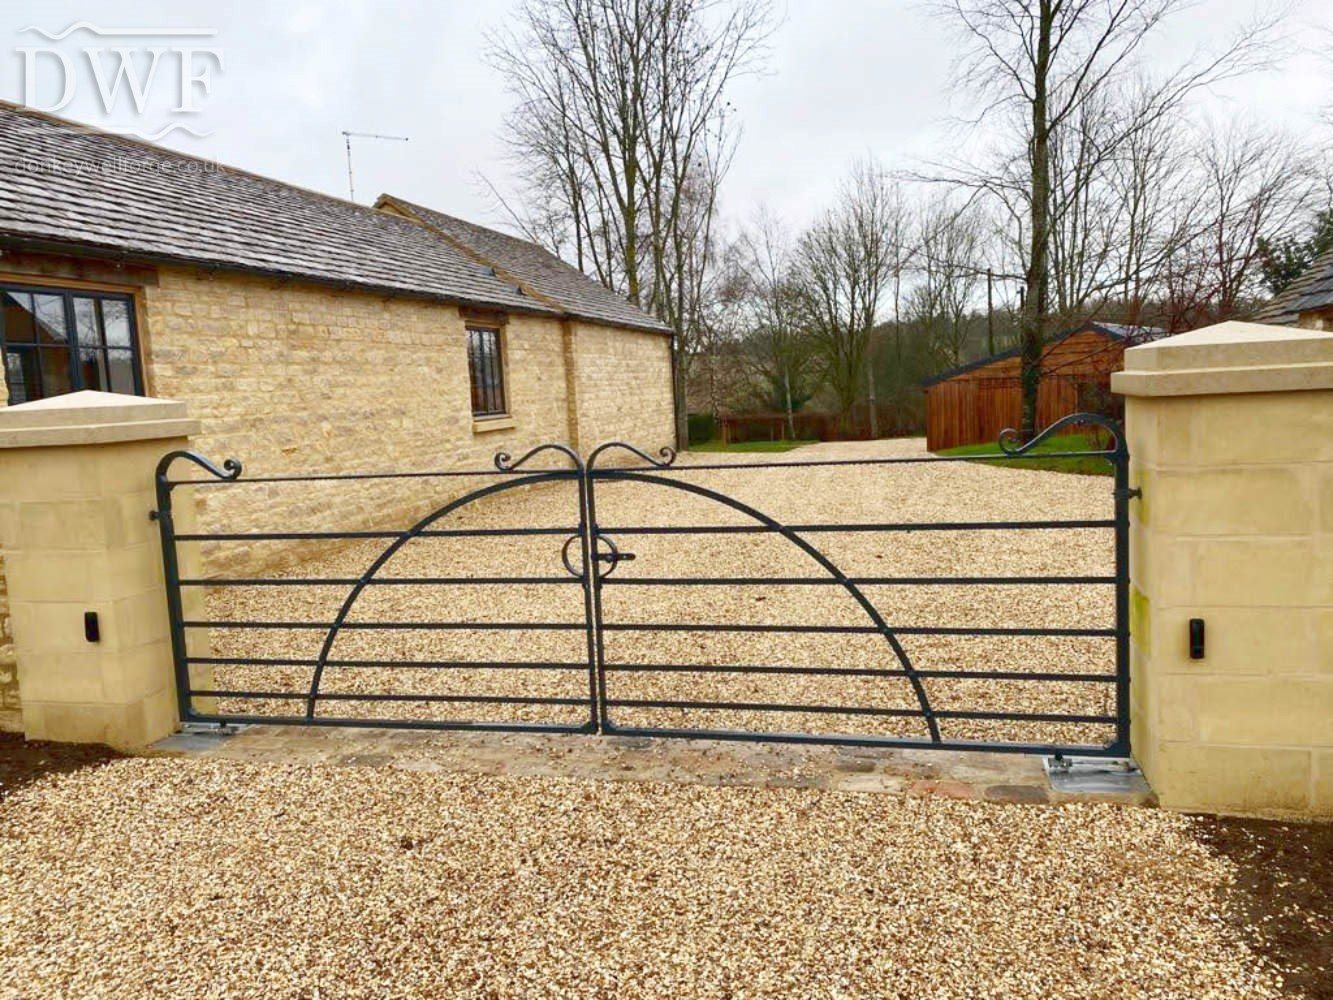 riveting-traditional-forged-driveway-estate-gates-tennoned-swellings